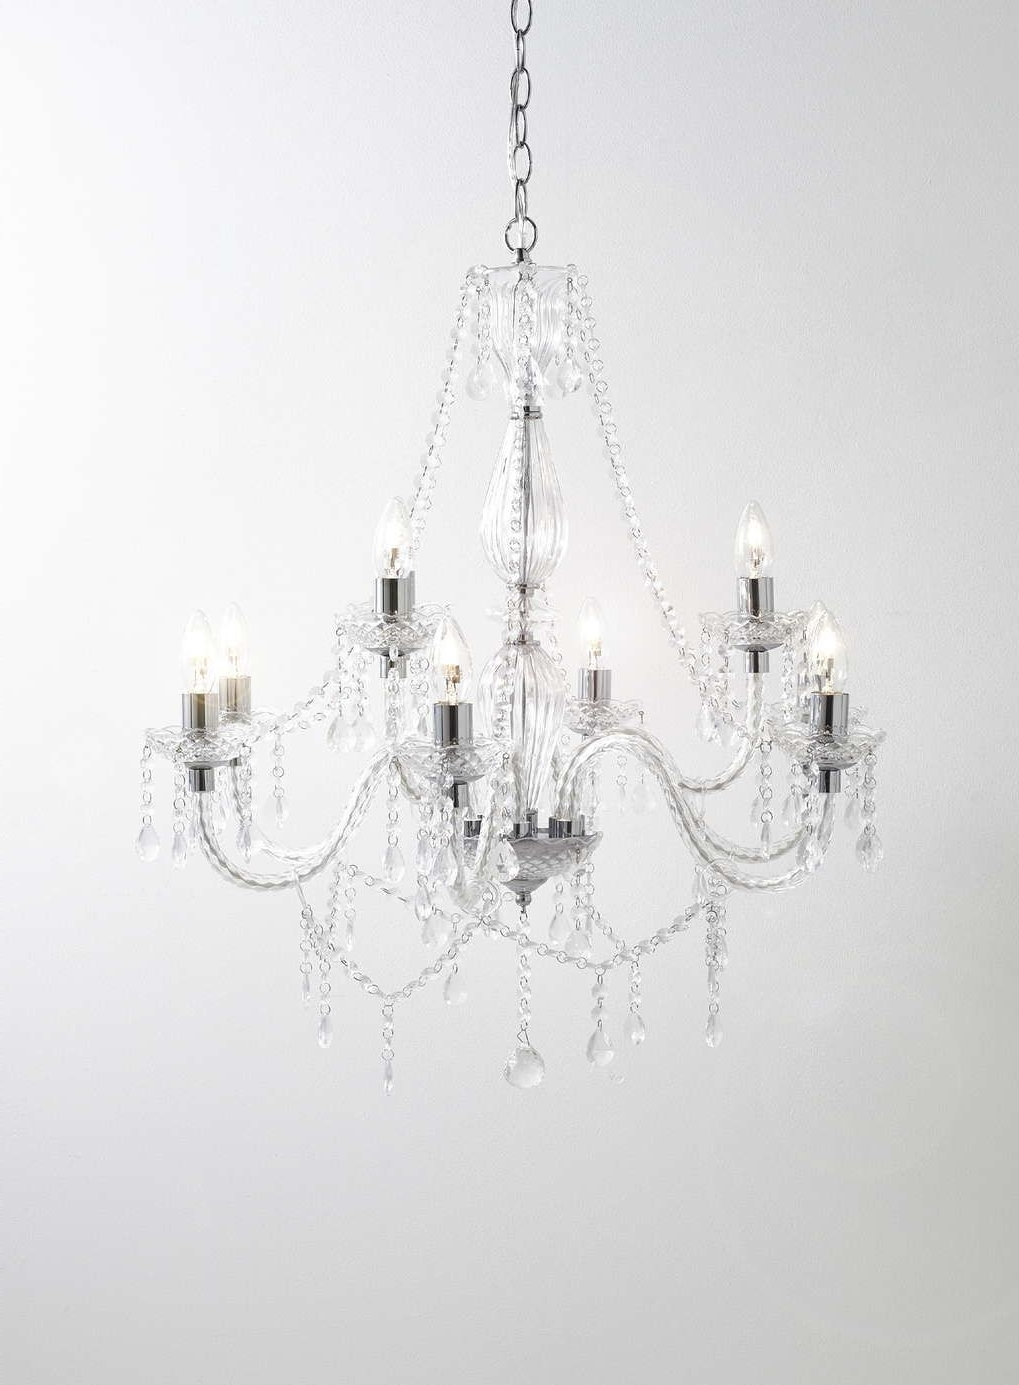 Chrome Bryony 9 Light Chandelier – Bhs Bedroom Lighting, Living Room Intended For Most Up To Date Chrome And Glass Chandeliers (View 20 of 20)